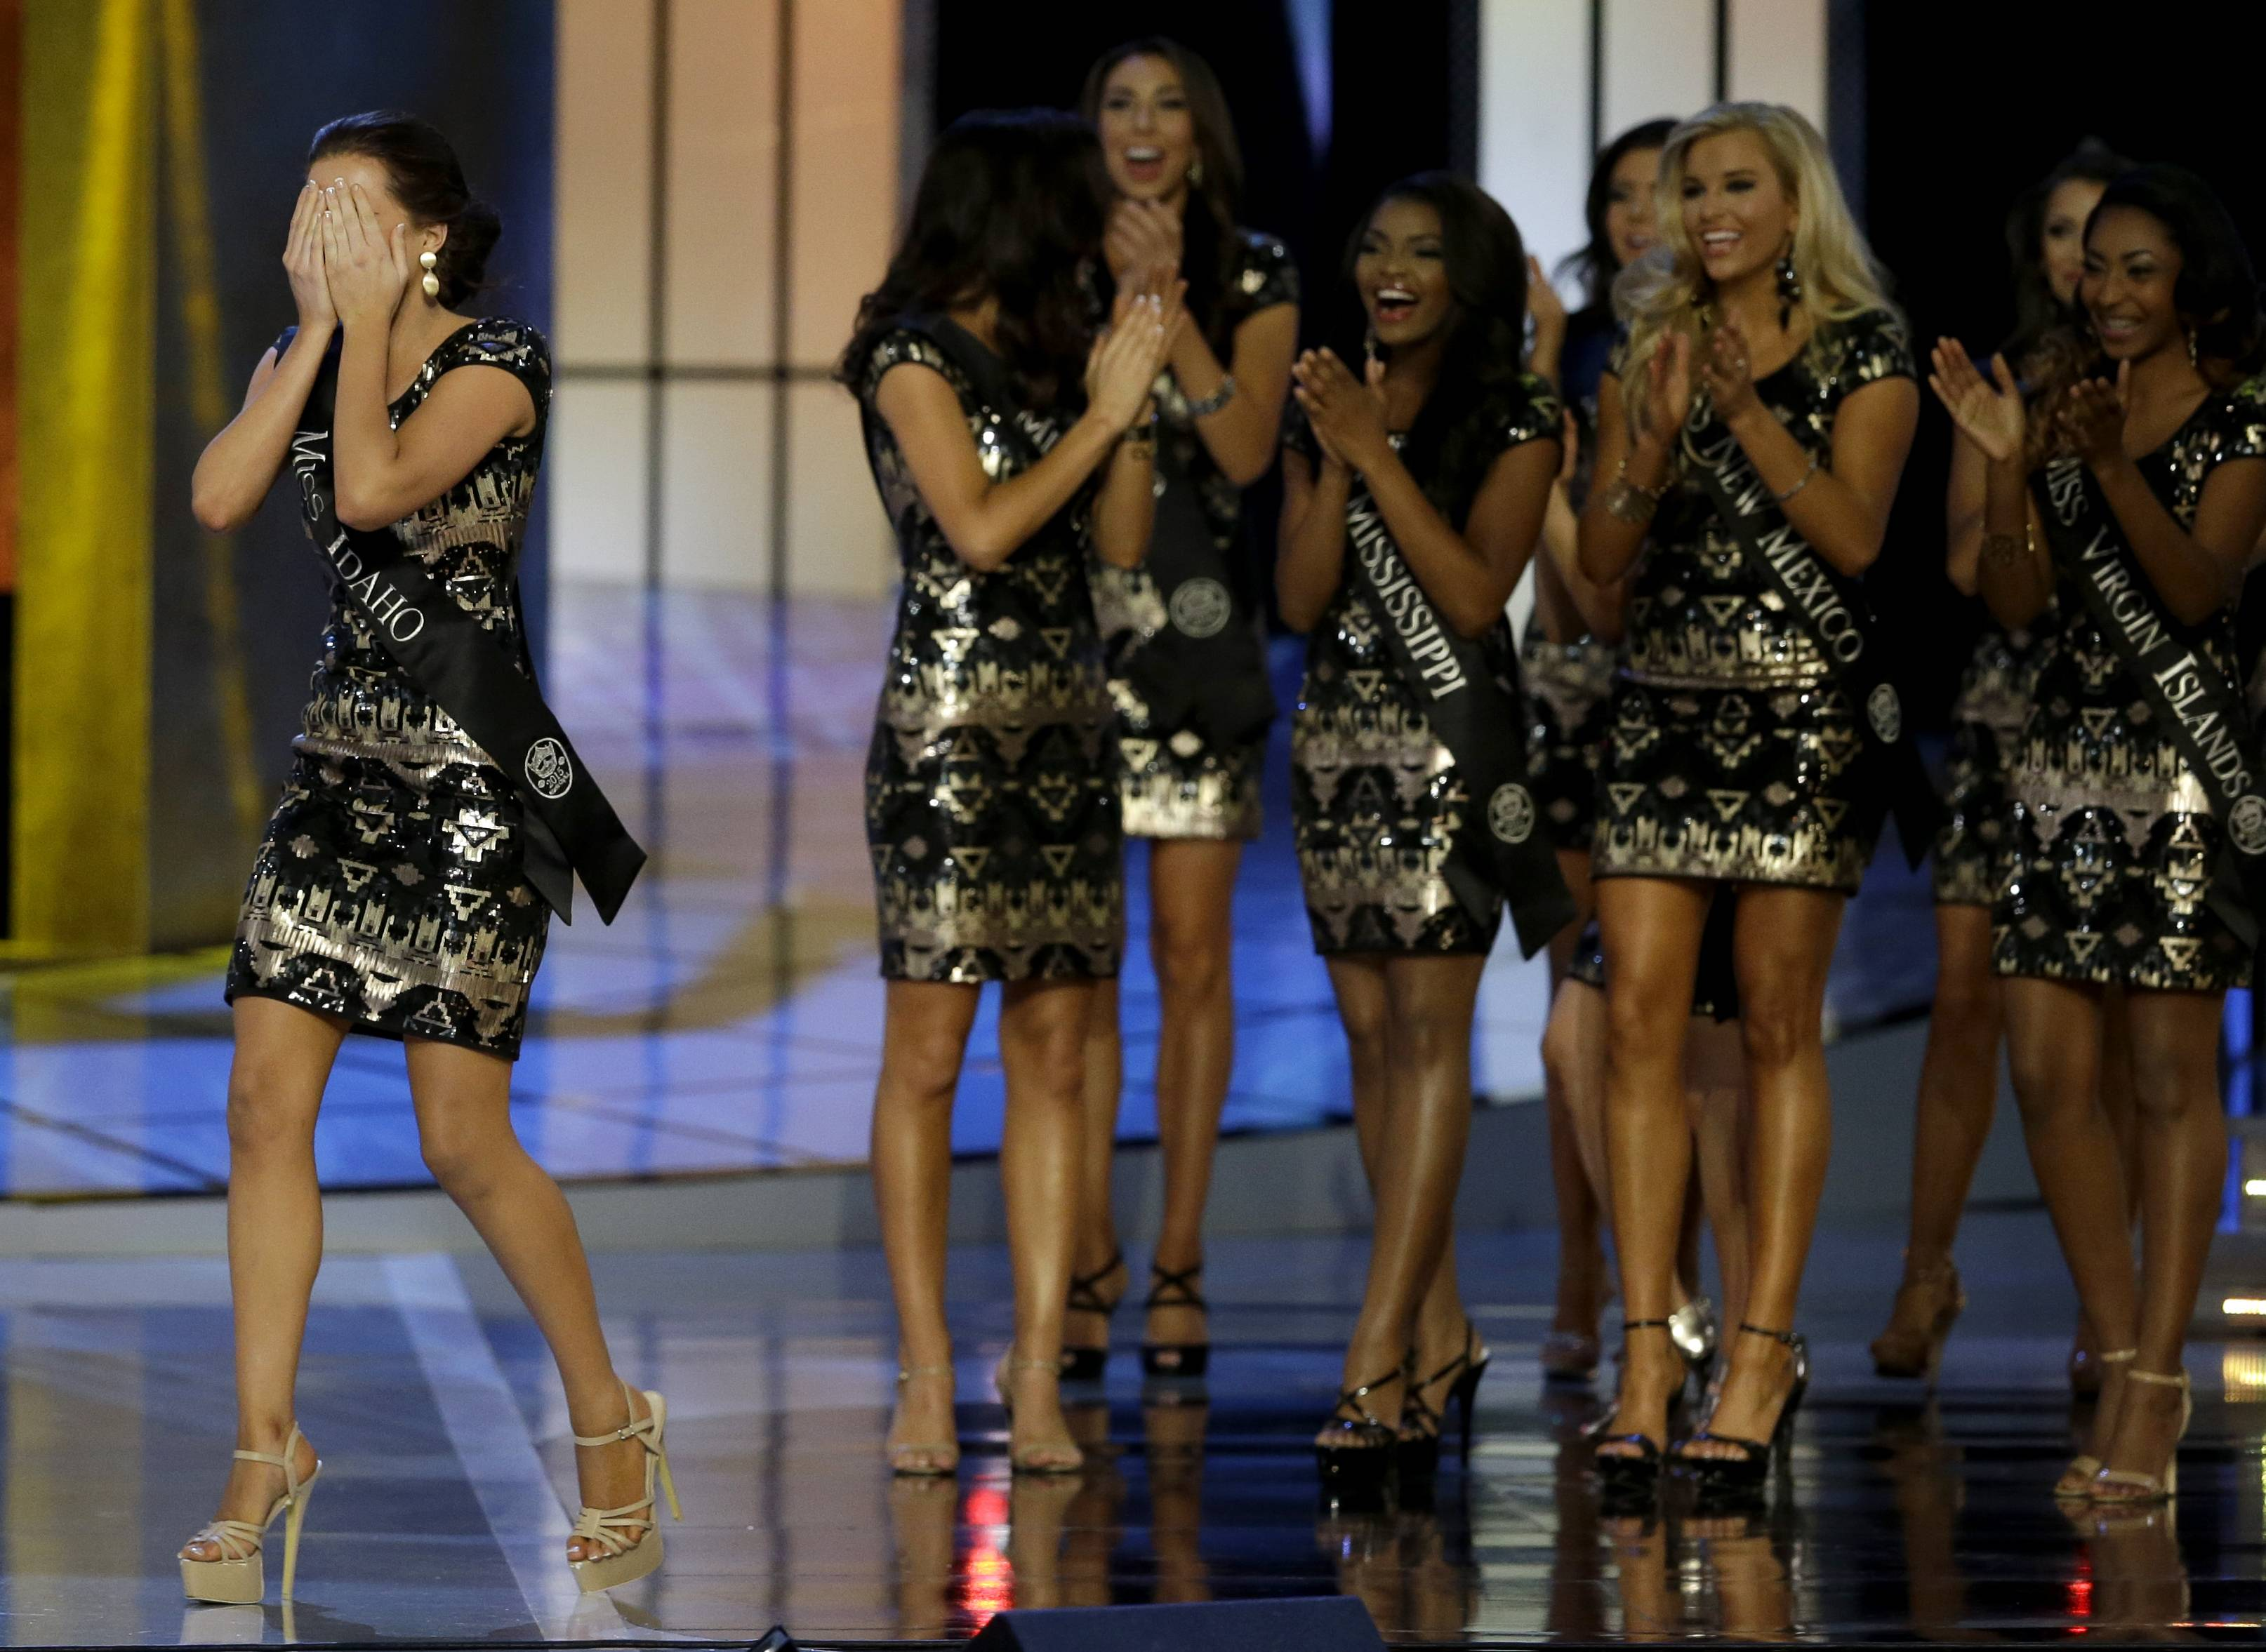 Miss America 2014 Nina Davuluri walks on stage during the Miss America 2015 pageant Sunday in Atlantic City, N.J.